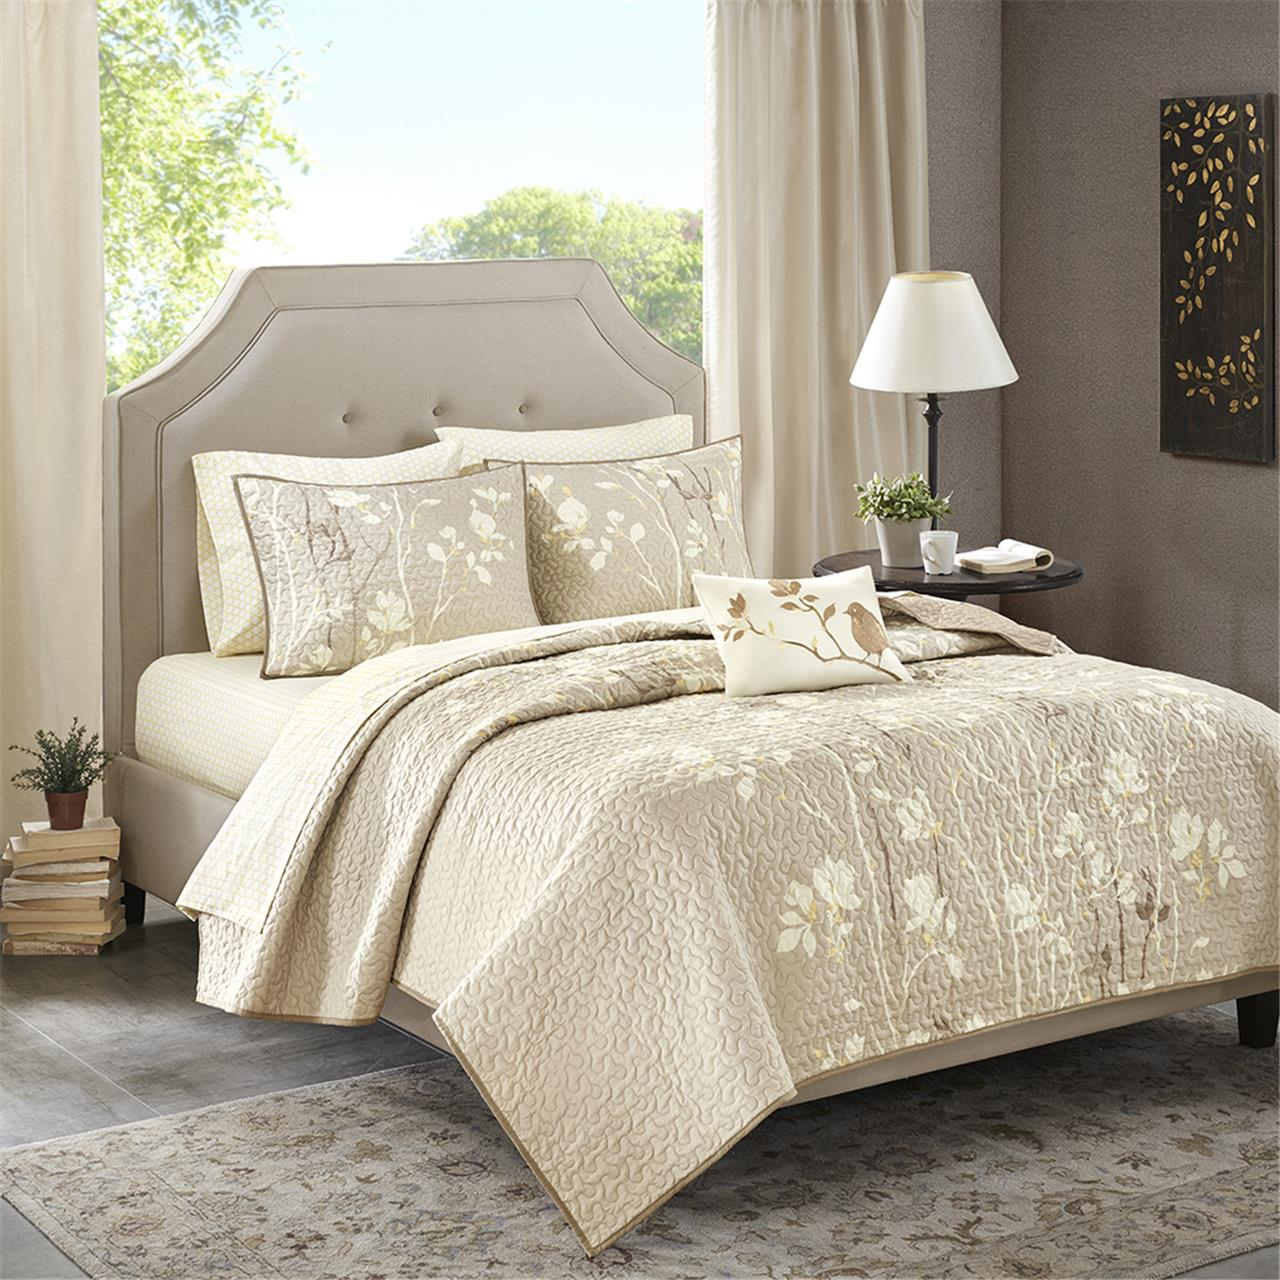 Madison Park Essentials - Vaughn Complete Coverlet and Cotton Sheet Set - Taupe - King